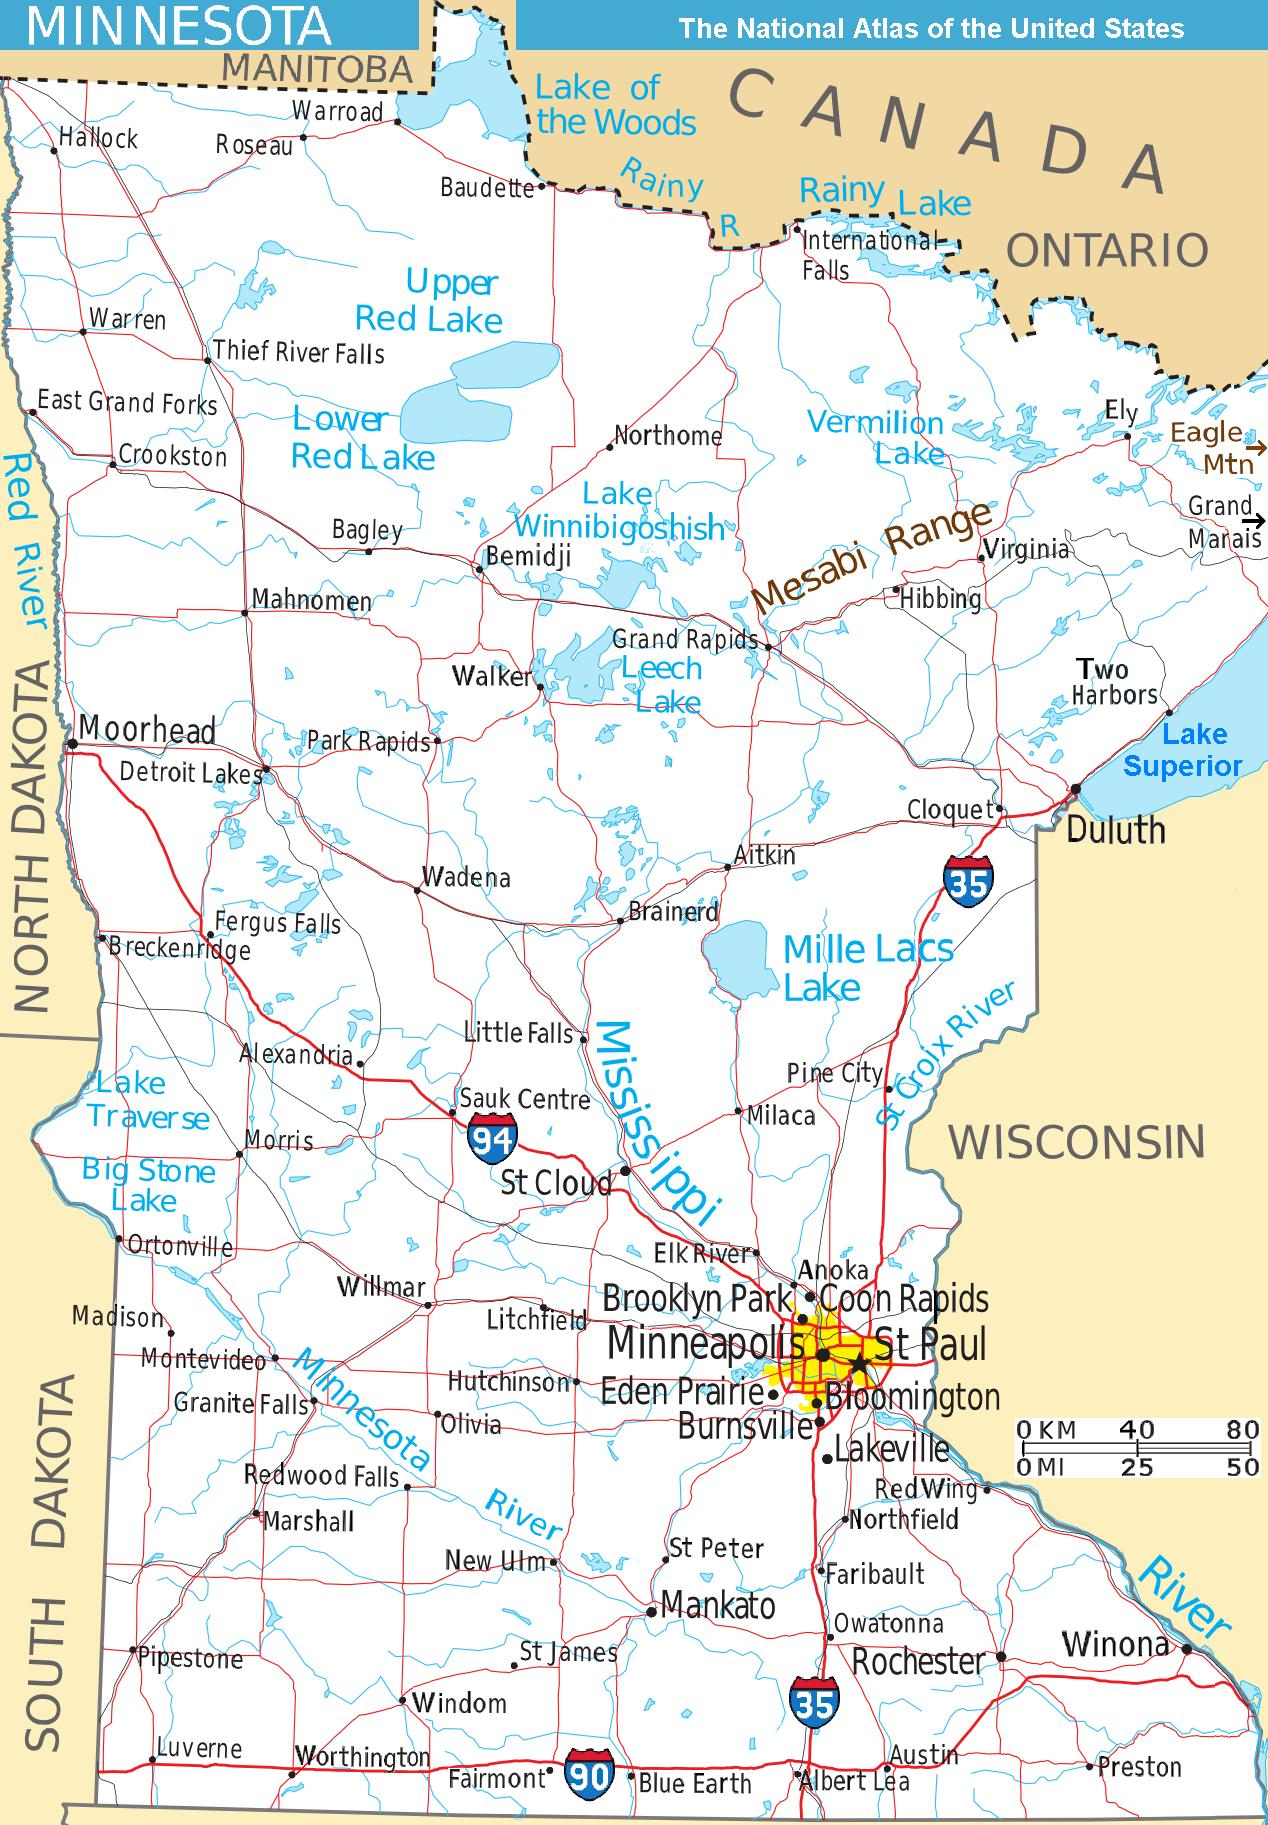 FileMap Minnesota West NAjpg Wikimedia Commons - Minnesota rivers map